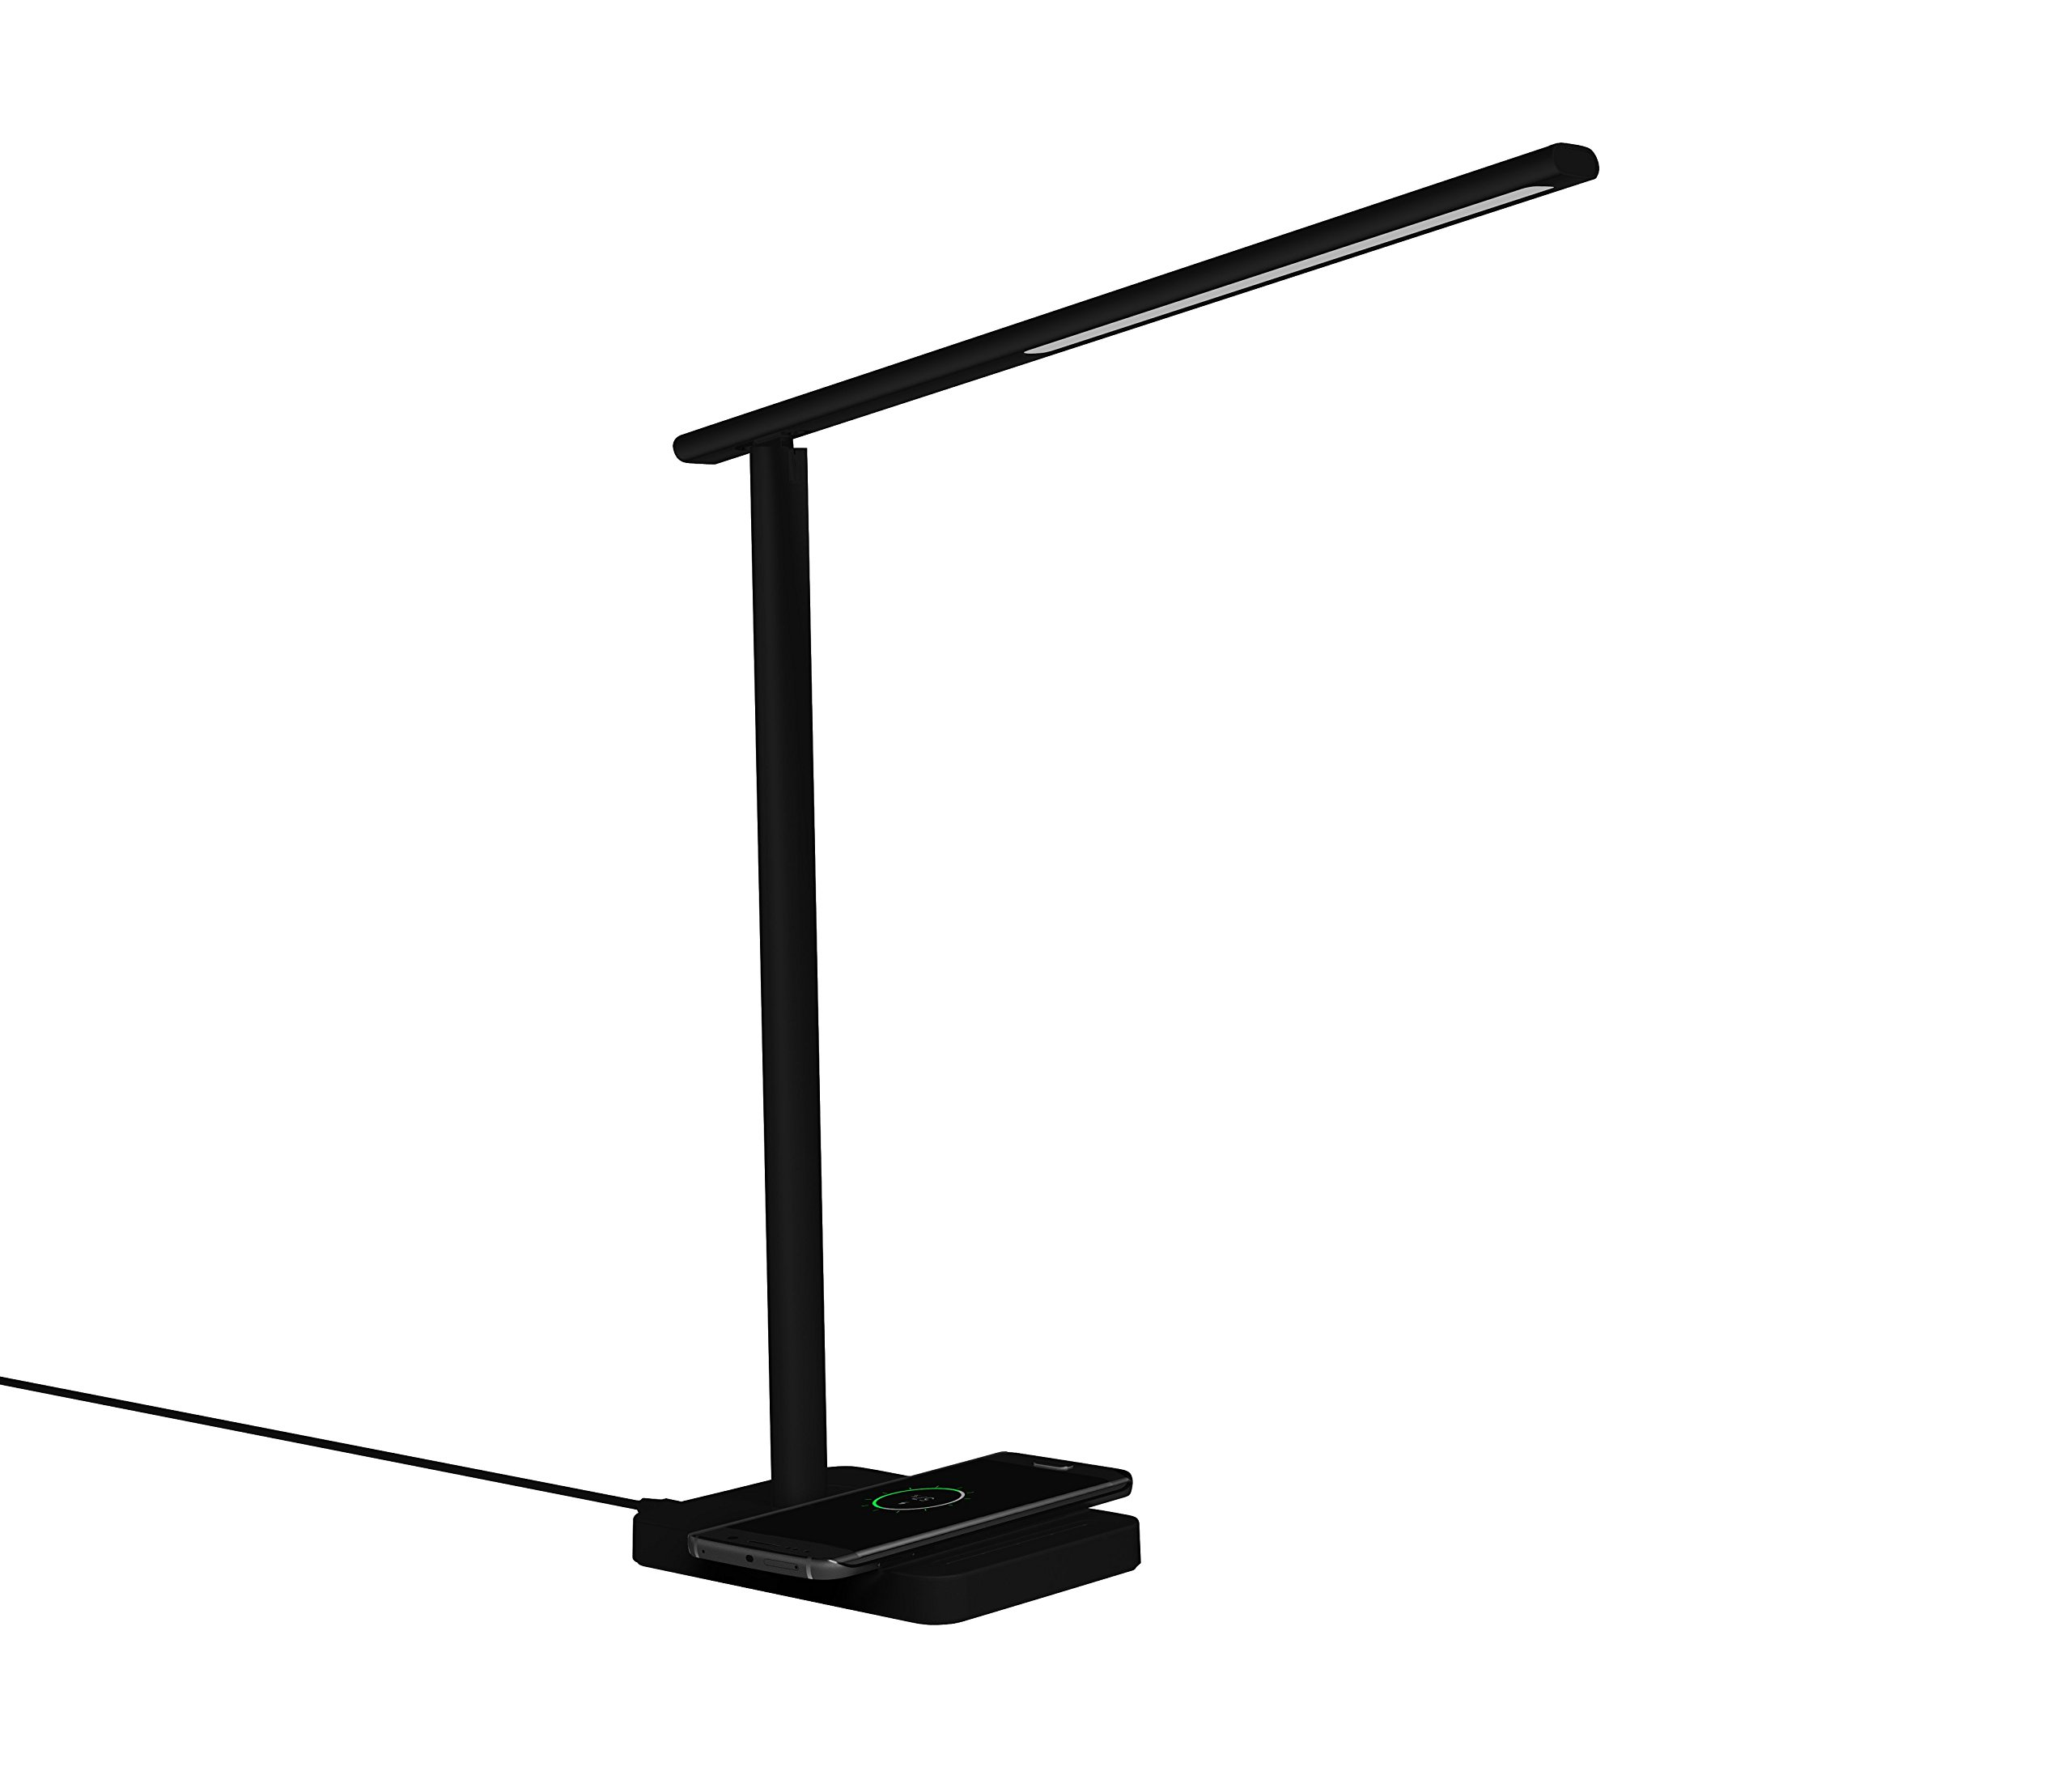 LED Desk Lamp with Qi Wireless Charger, Eye-caring Table Lamps, Dimmable Lamp with 5V/1A USB Charging Port, Office Desk Lamp, Touch, 4 Color Temperature Modes by Geelky (Jet Black)